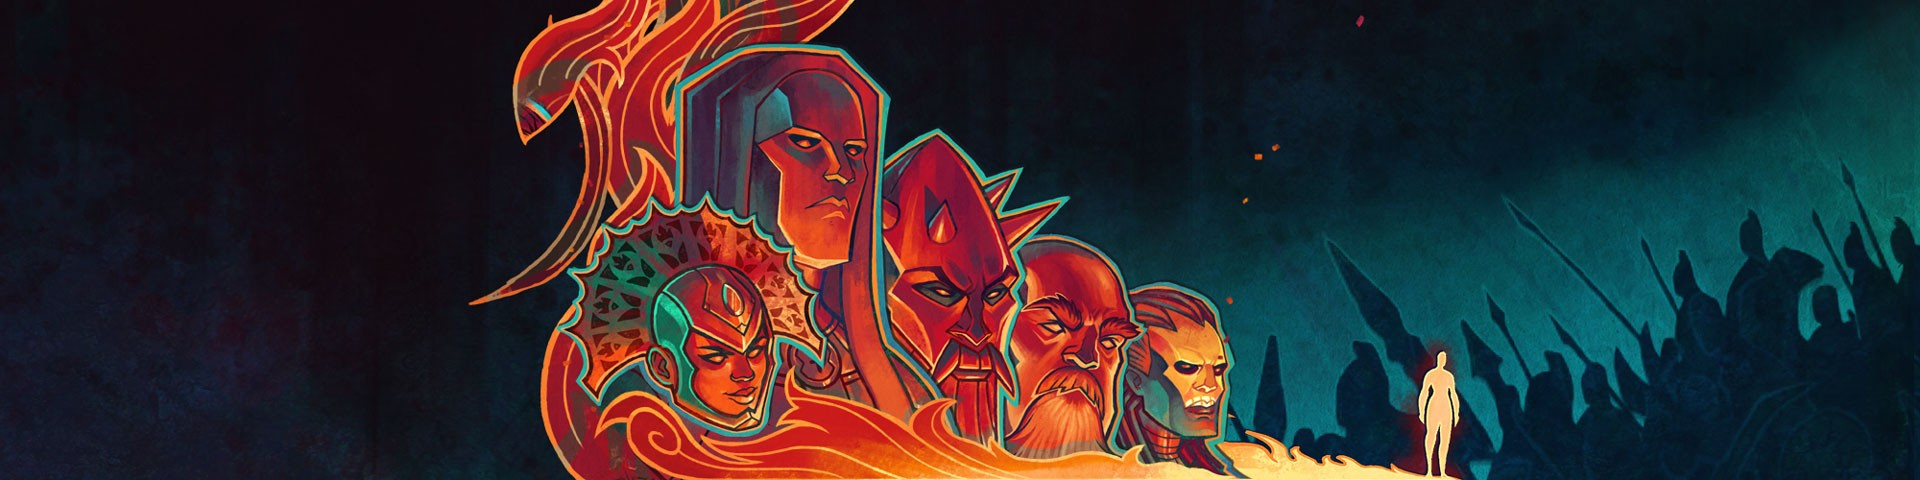 Tyranny - Deluxe Edition Upgrade Pack Download For Mac